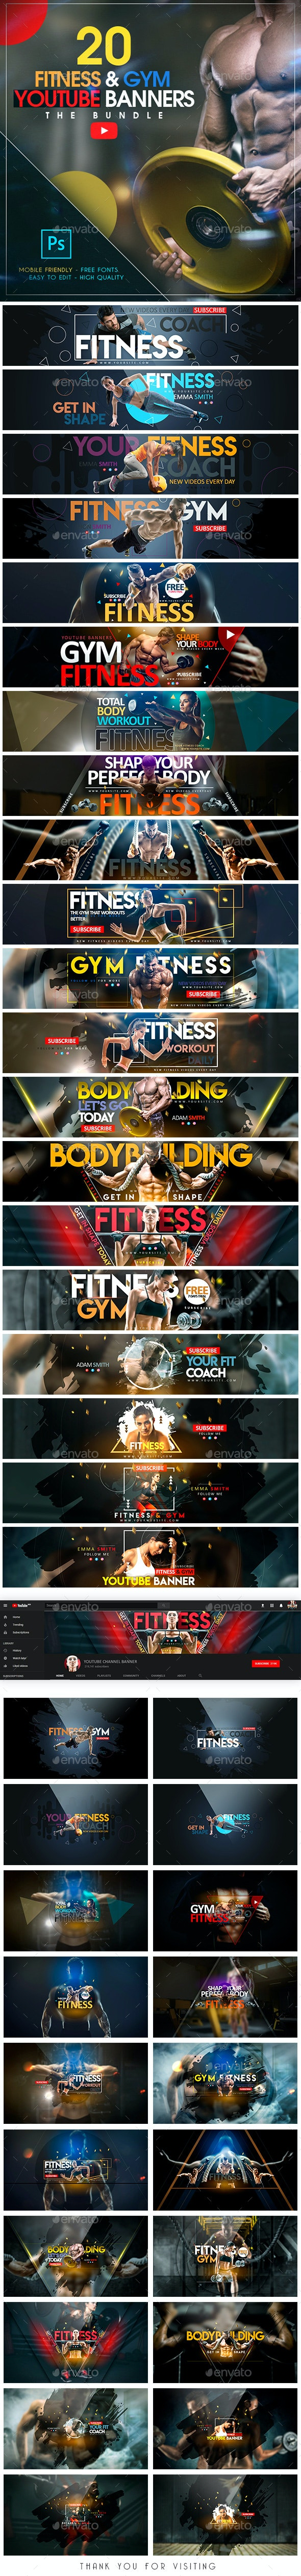 YouTube Bundle - 20 Fitness & Gym Banners - YouTube Social Media